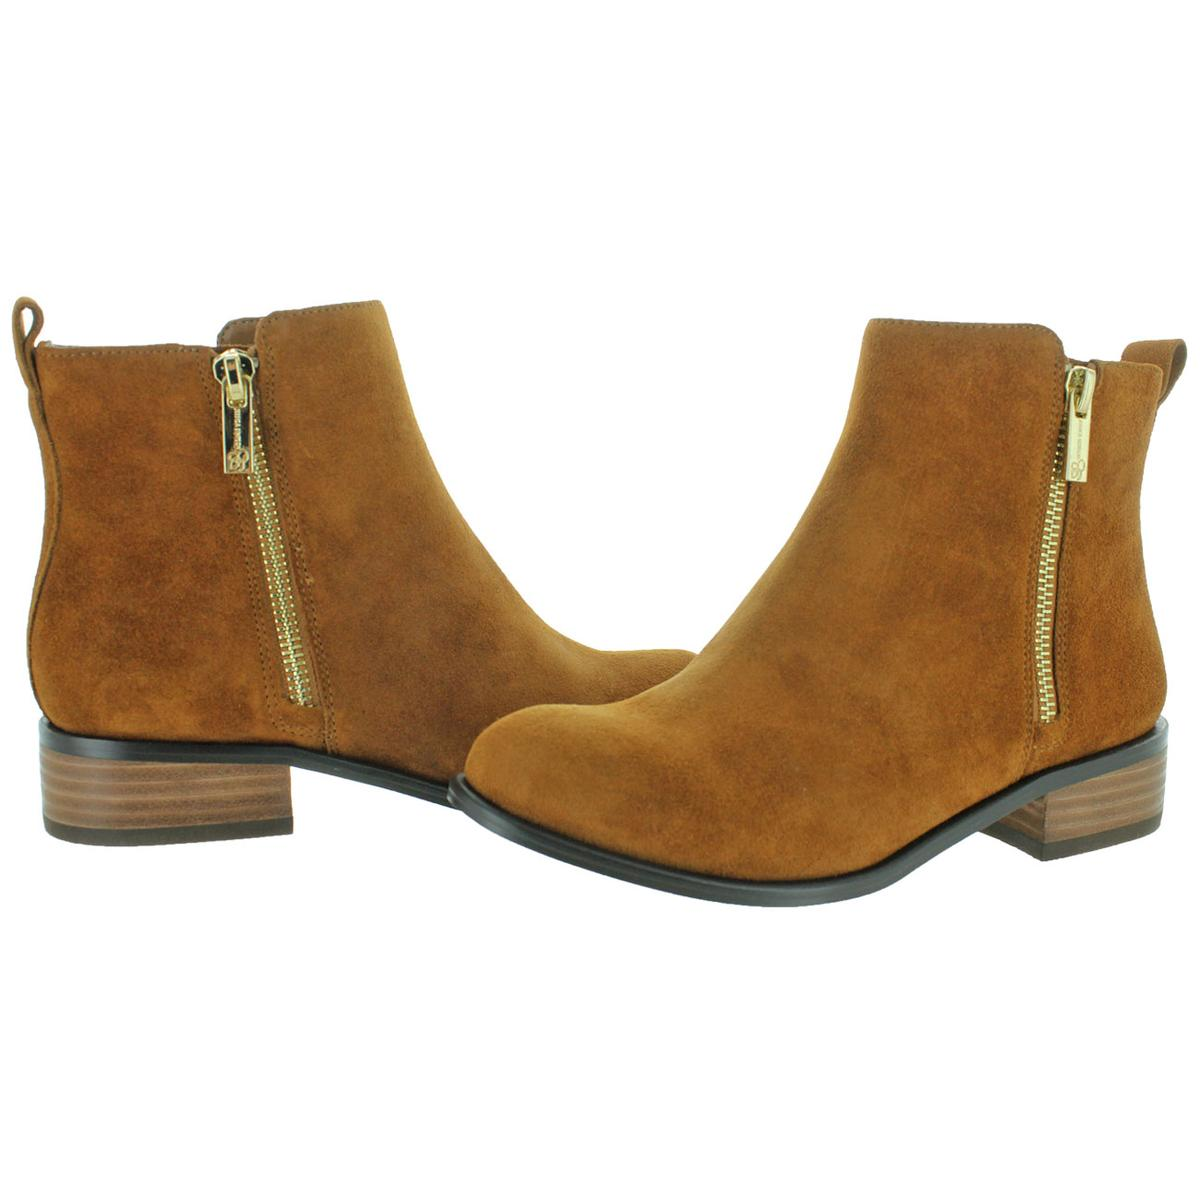 Jessica-Simpson-Kesaria-Ankle-Casual-Suede-Booties-Boots thumbnail 8